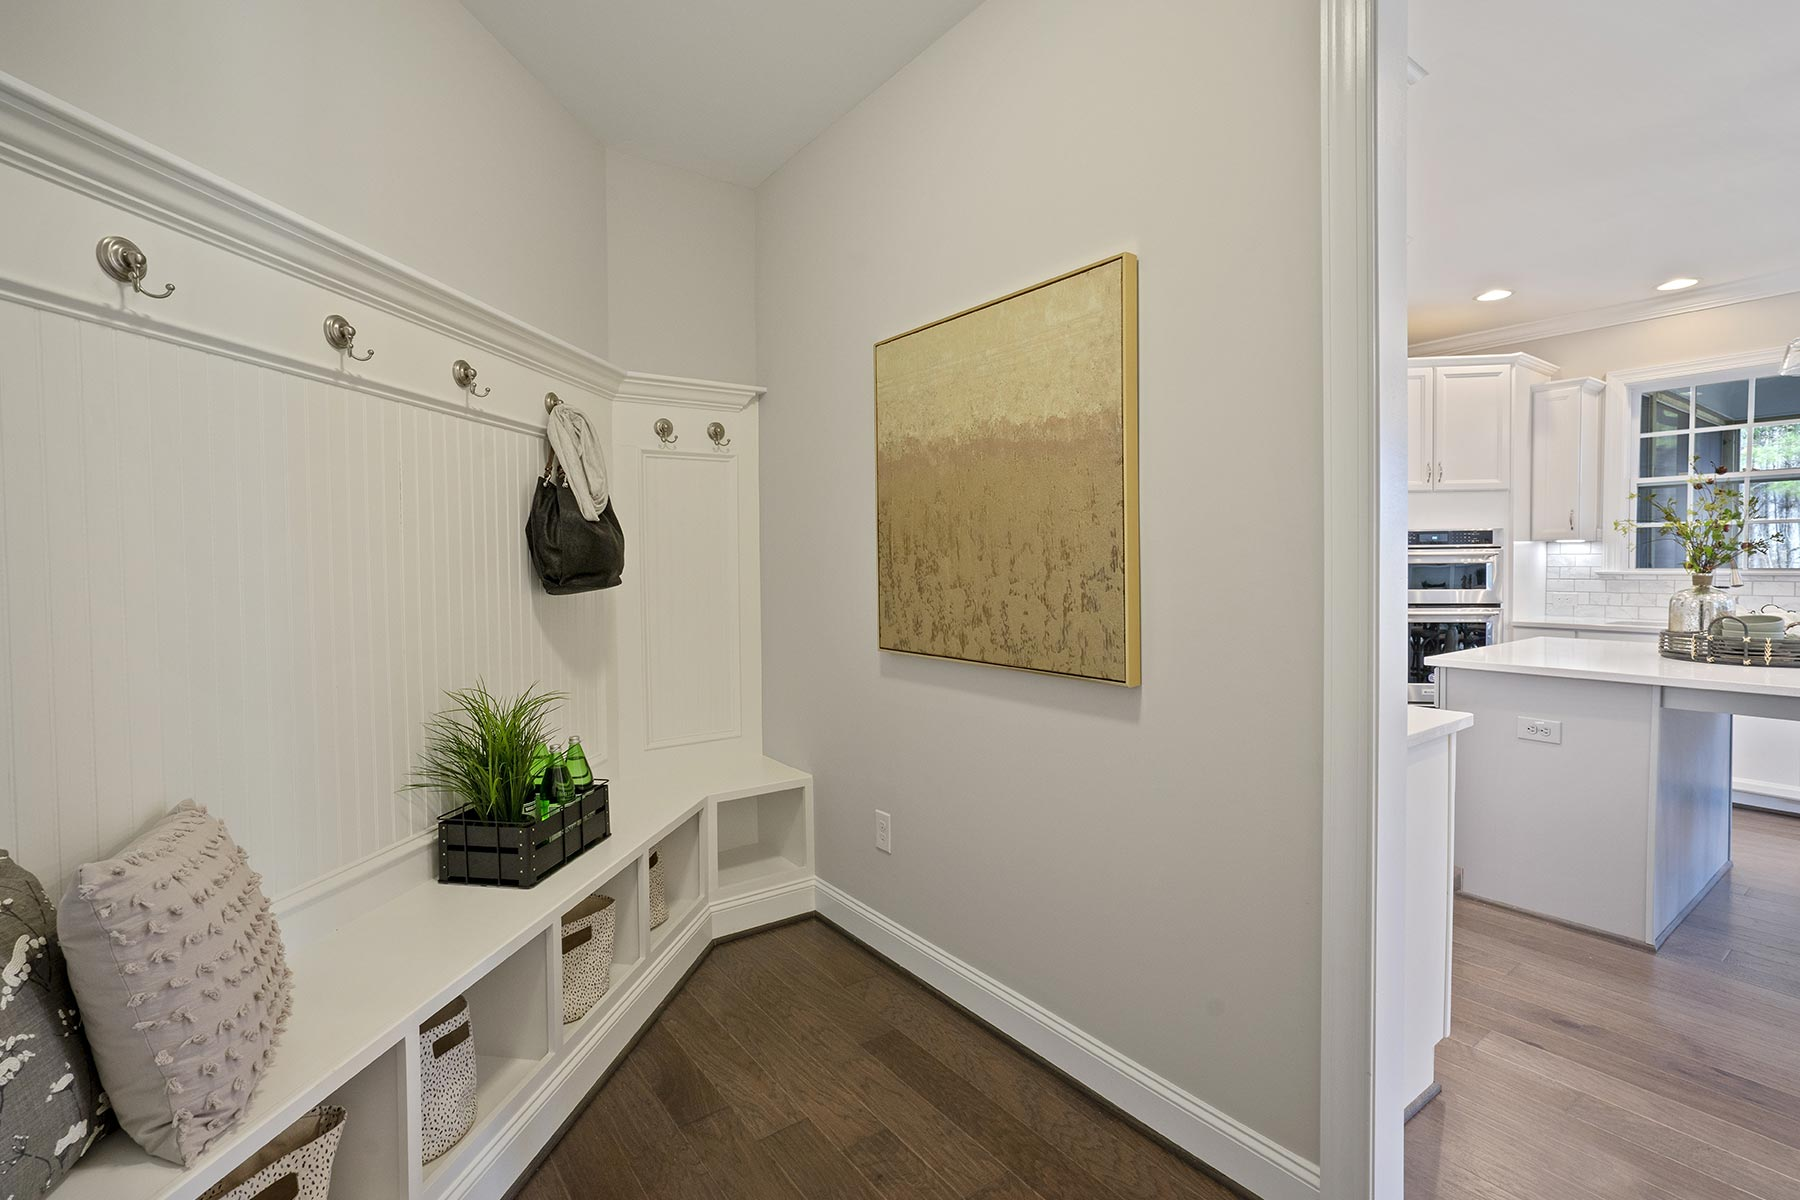 Juniper Plan Dropzone at Ballentine Place in Holly Springs North Carolina by Mattamy Homes